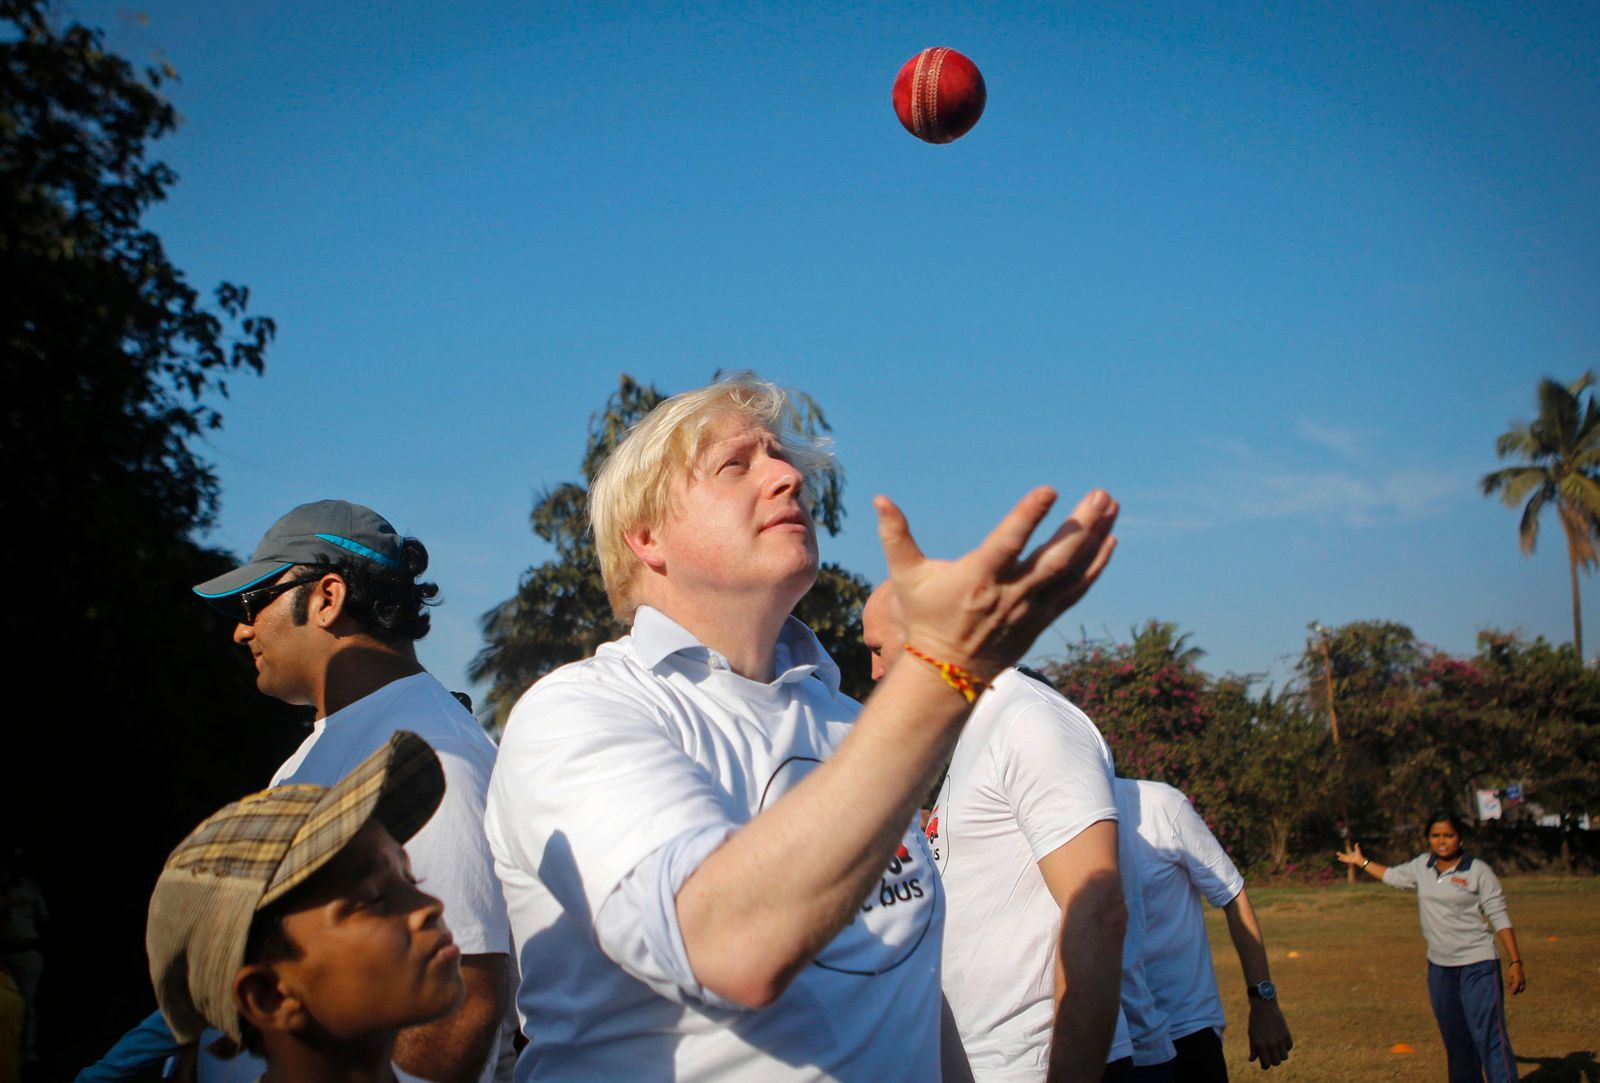 London Mayor Johnson throws a cricket ball before playing games with underprivileged children in Mumbai